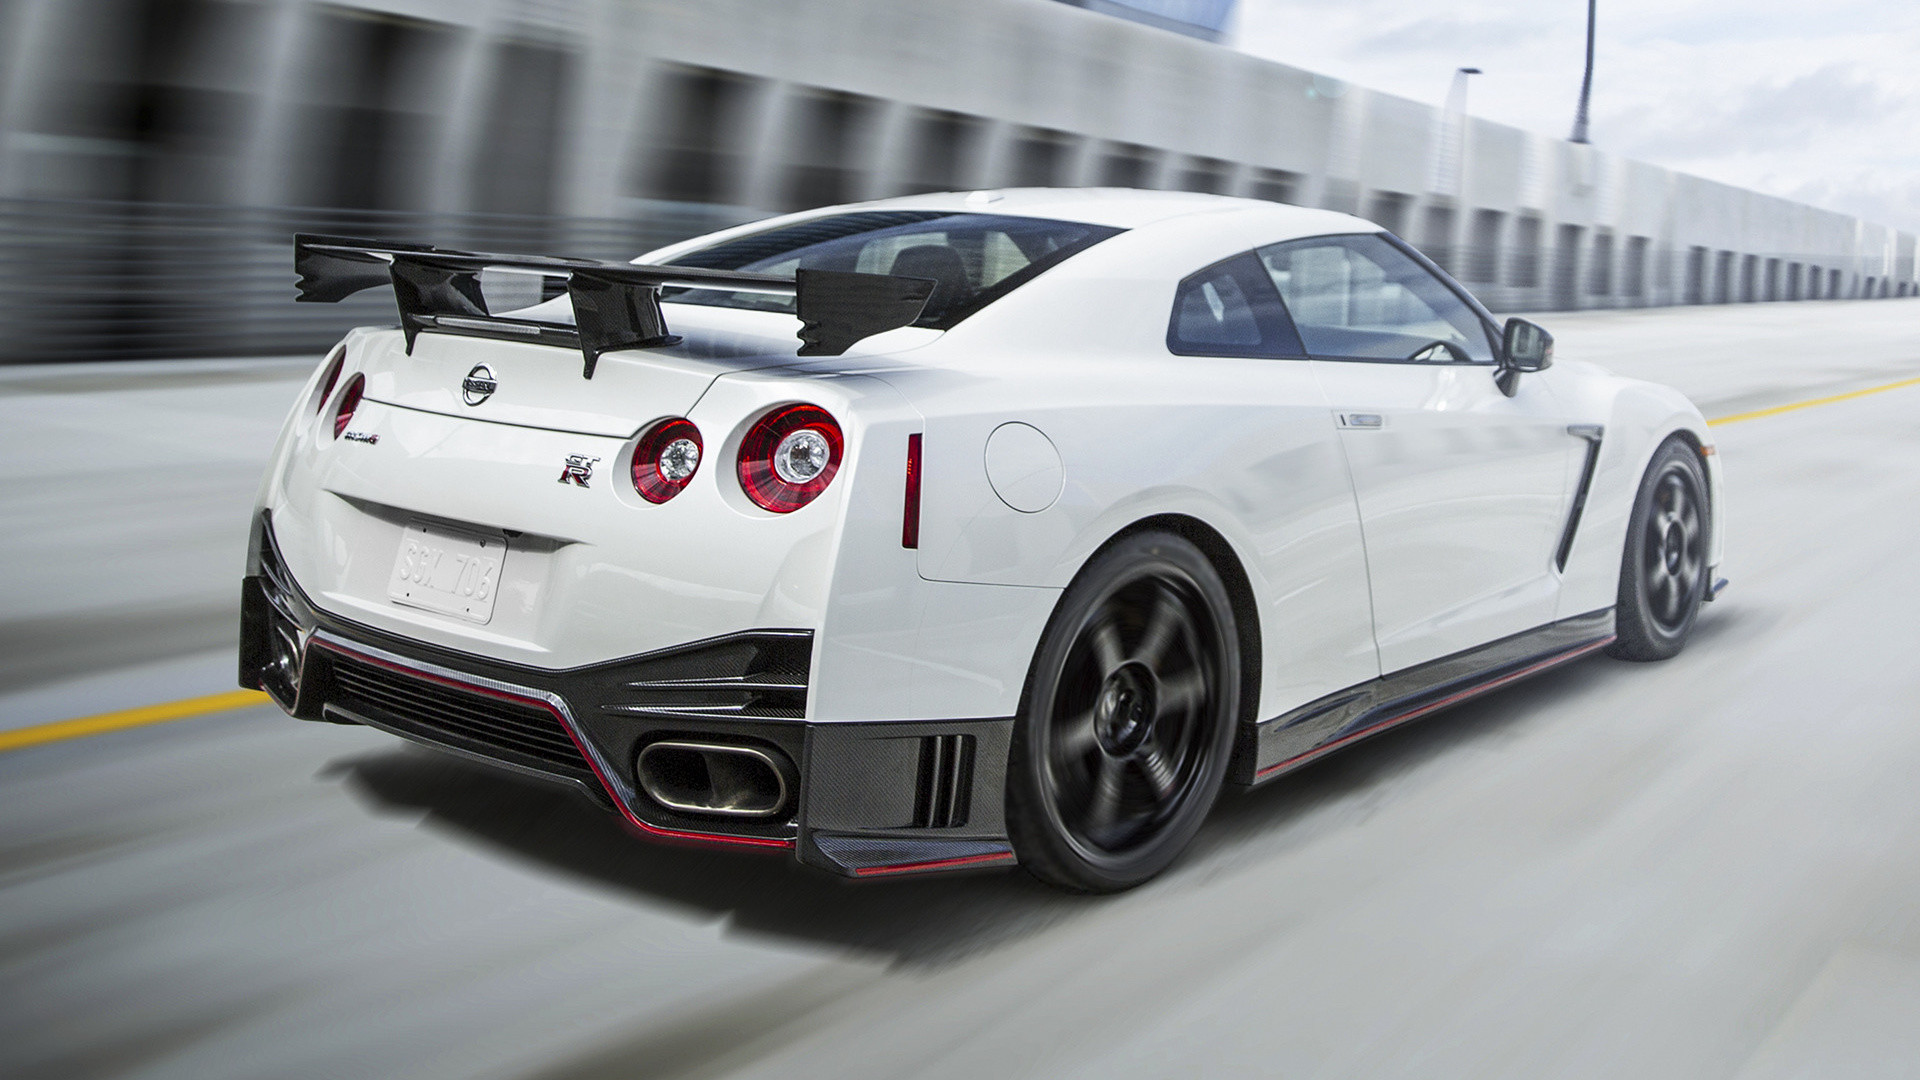 1920x1080 nissan gt r nismo wallpapers for pc desktop desktop wallpapers hd 4k  windows 10 colourful images backgrounds download wallpaper free 1920×1080 Wallpaper  HD